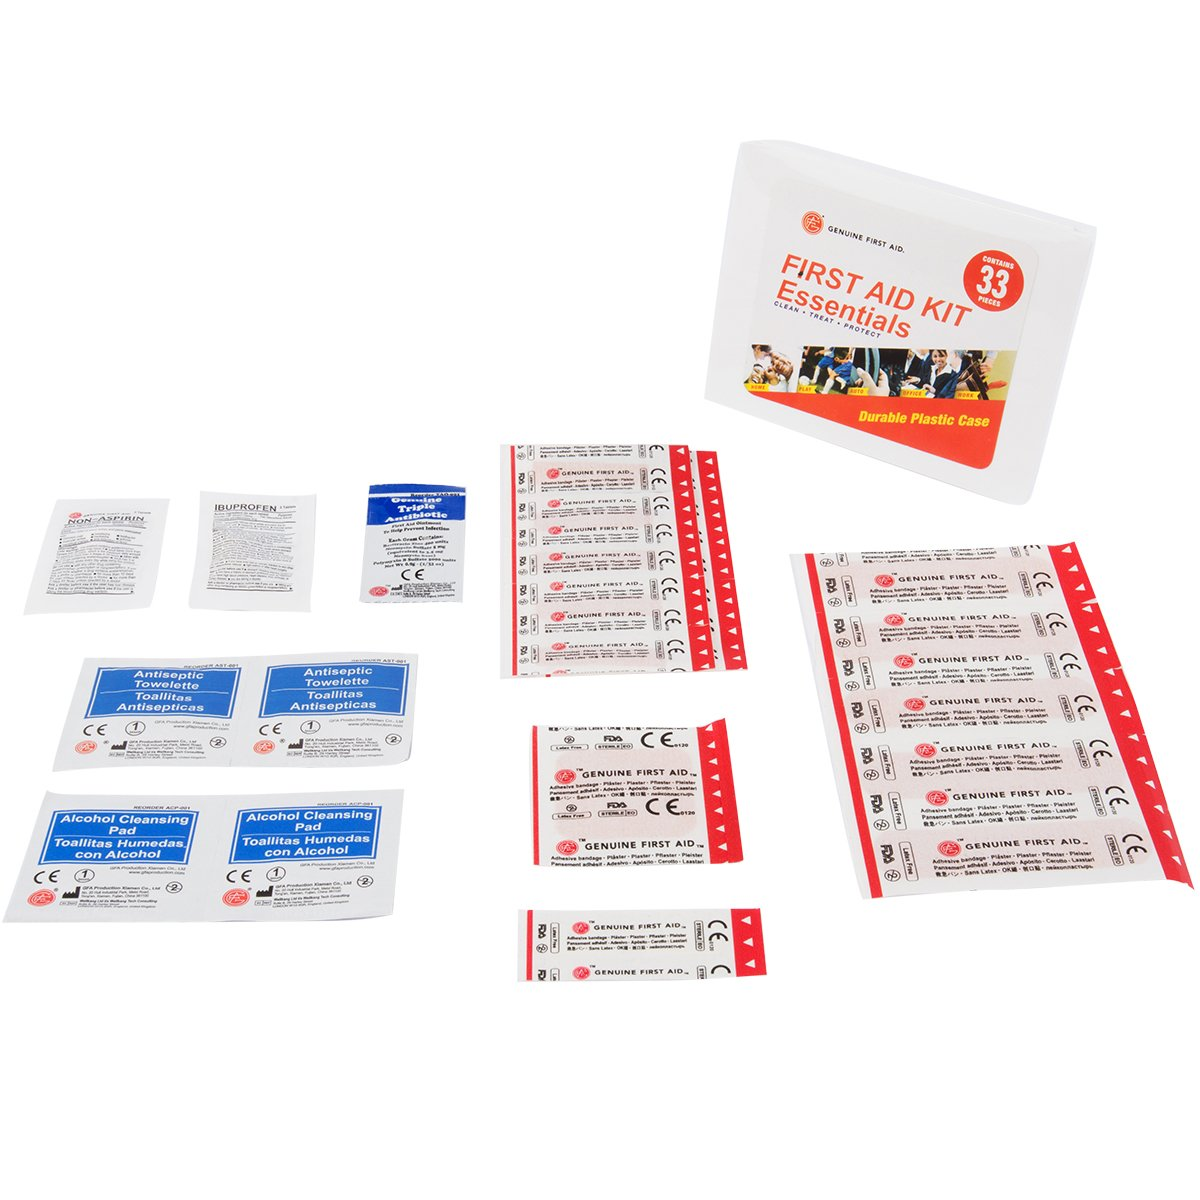 Amazon.com: Essential First Aid Items - 33 items included: Health & Personal Care